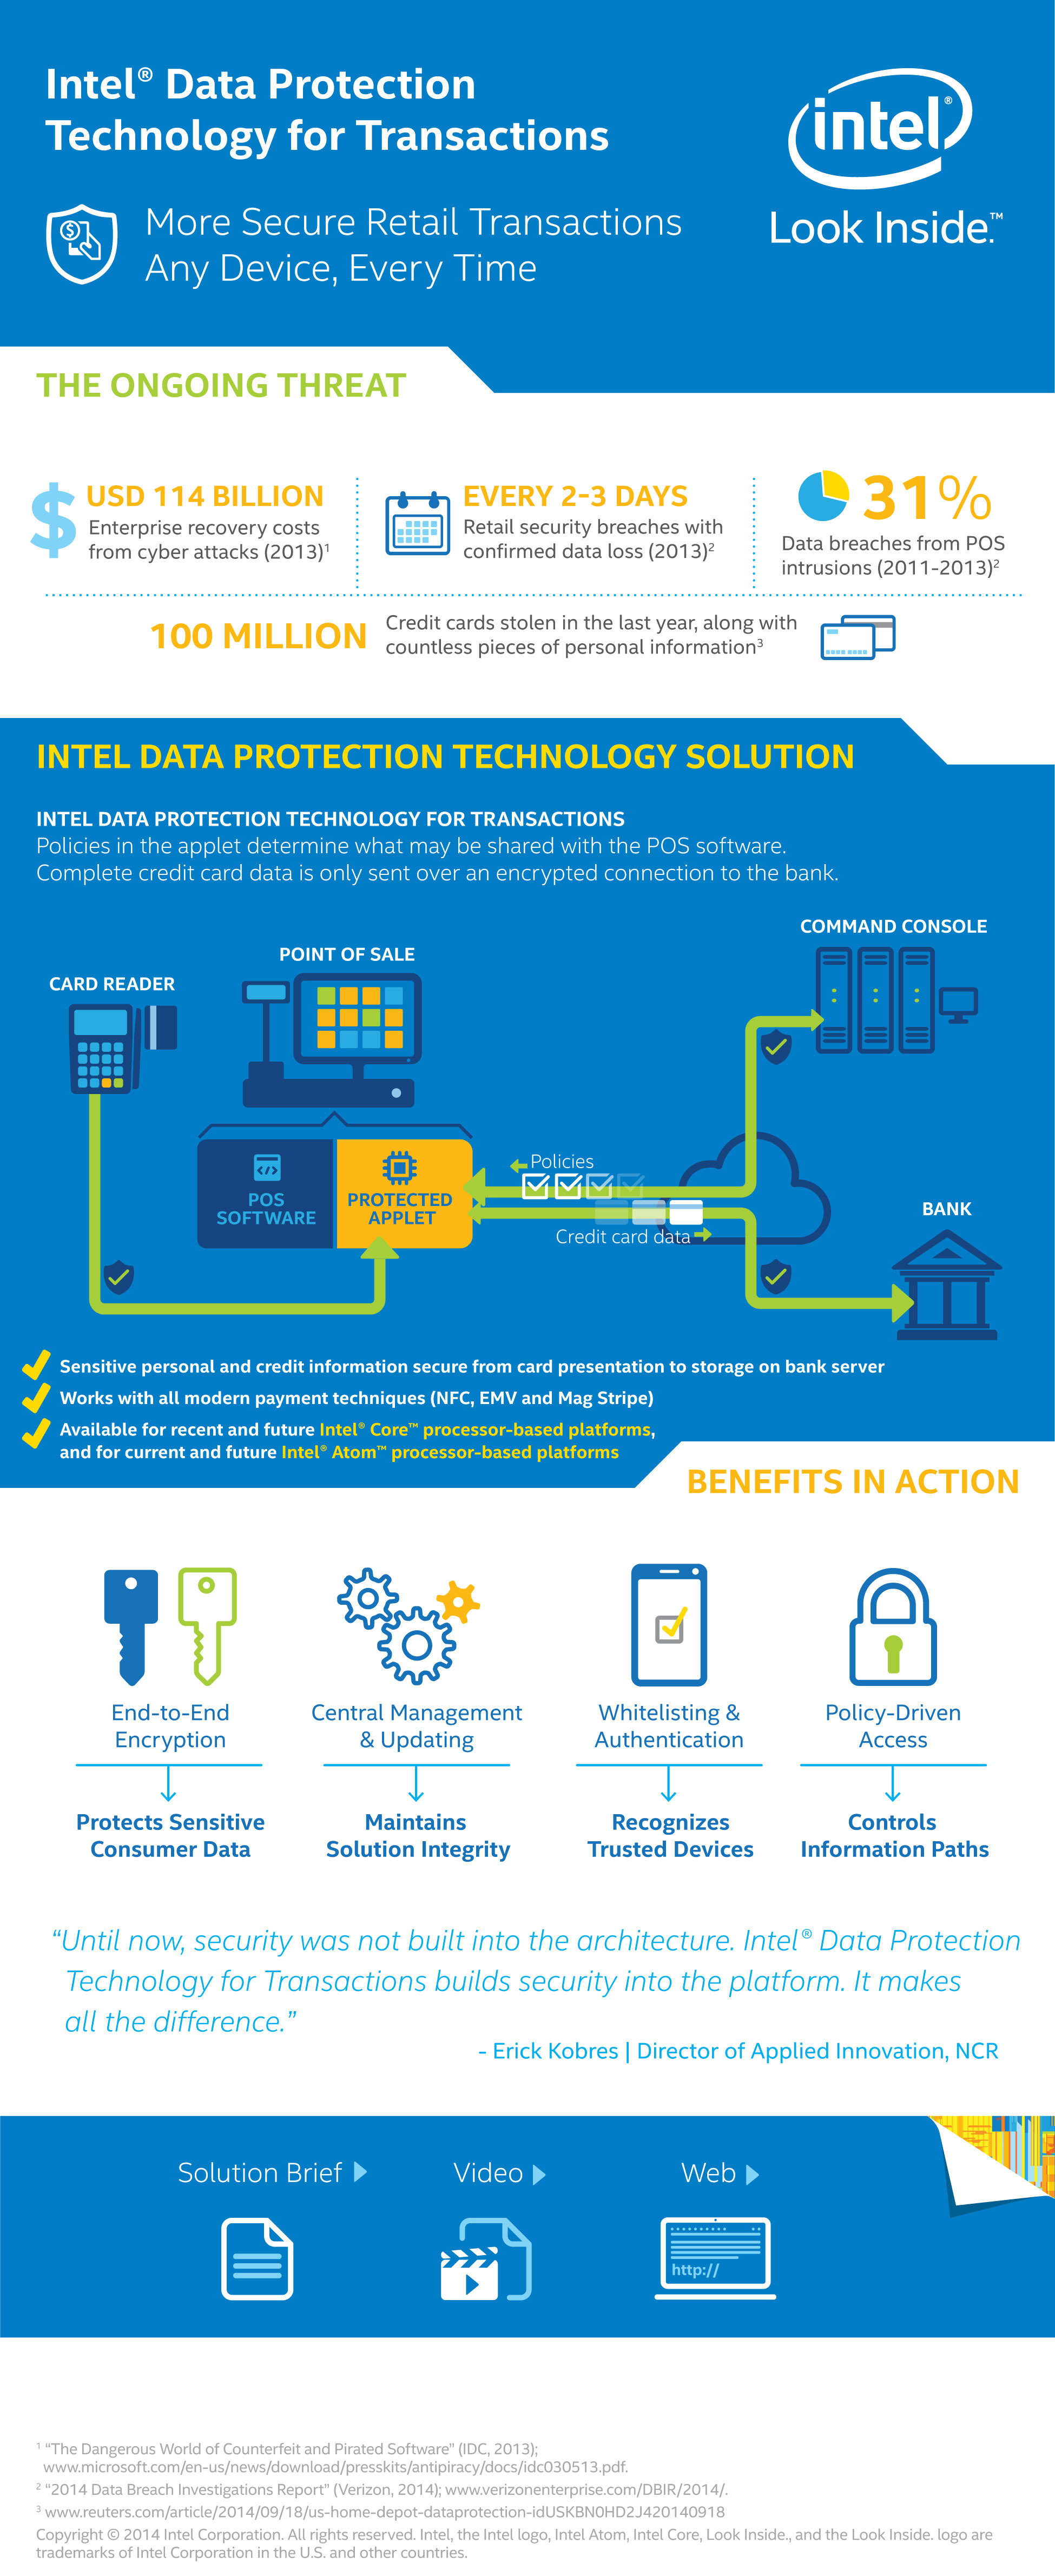 Intel data protection technology for transactions